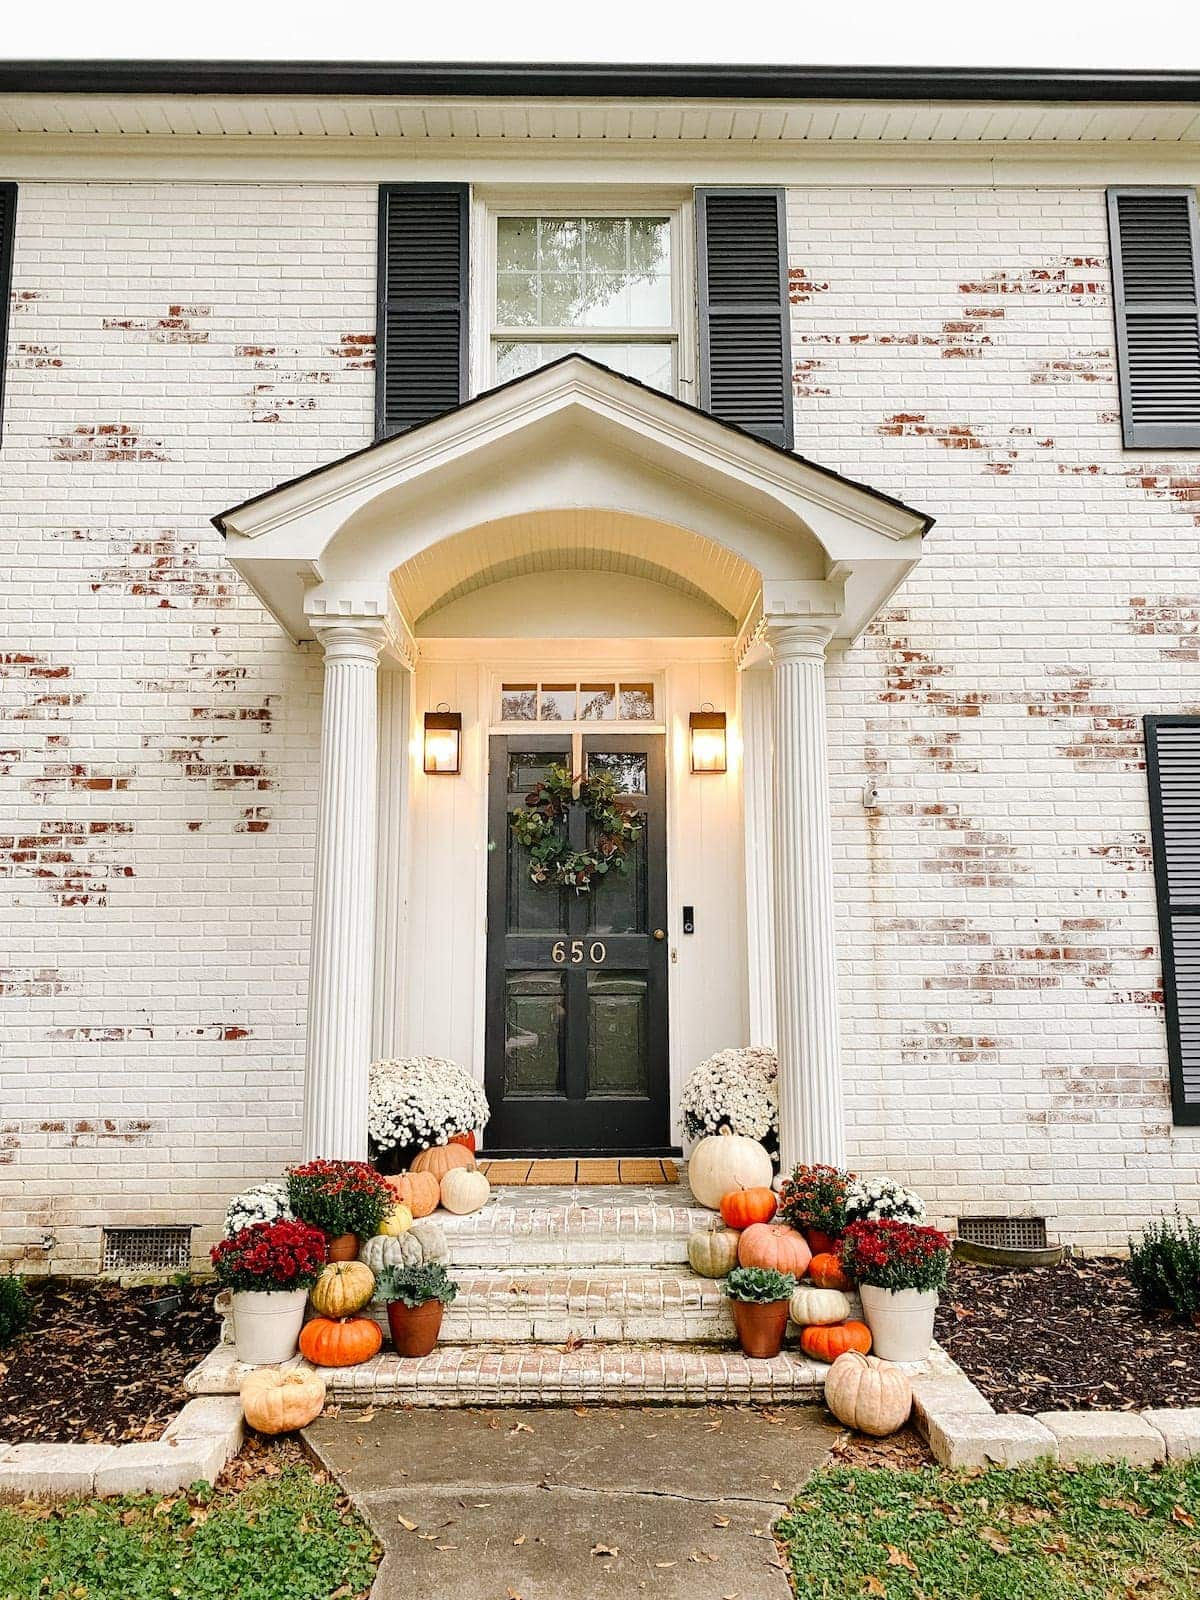 Colorful Fall Porch Stoop Decorated with Mums and Pumpkins with Limewashed Brick